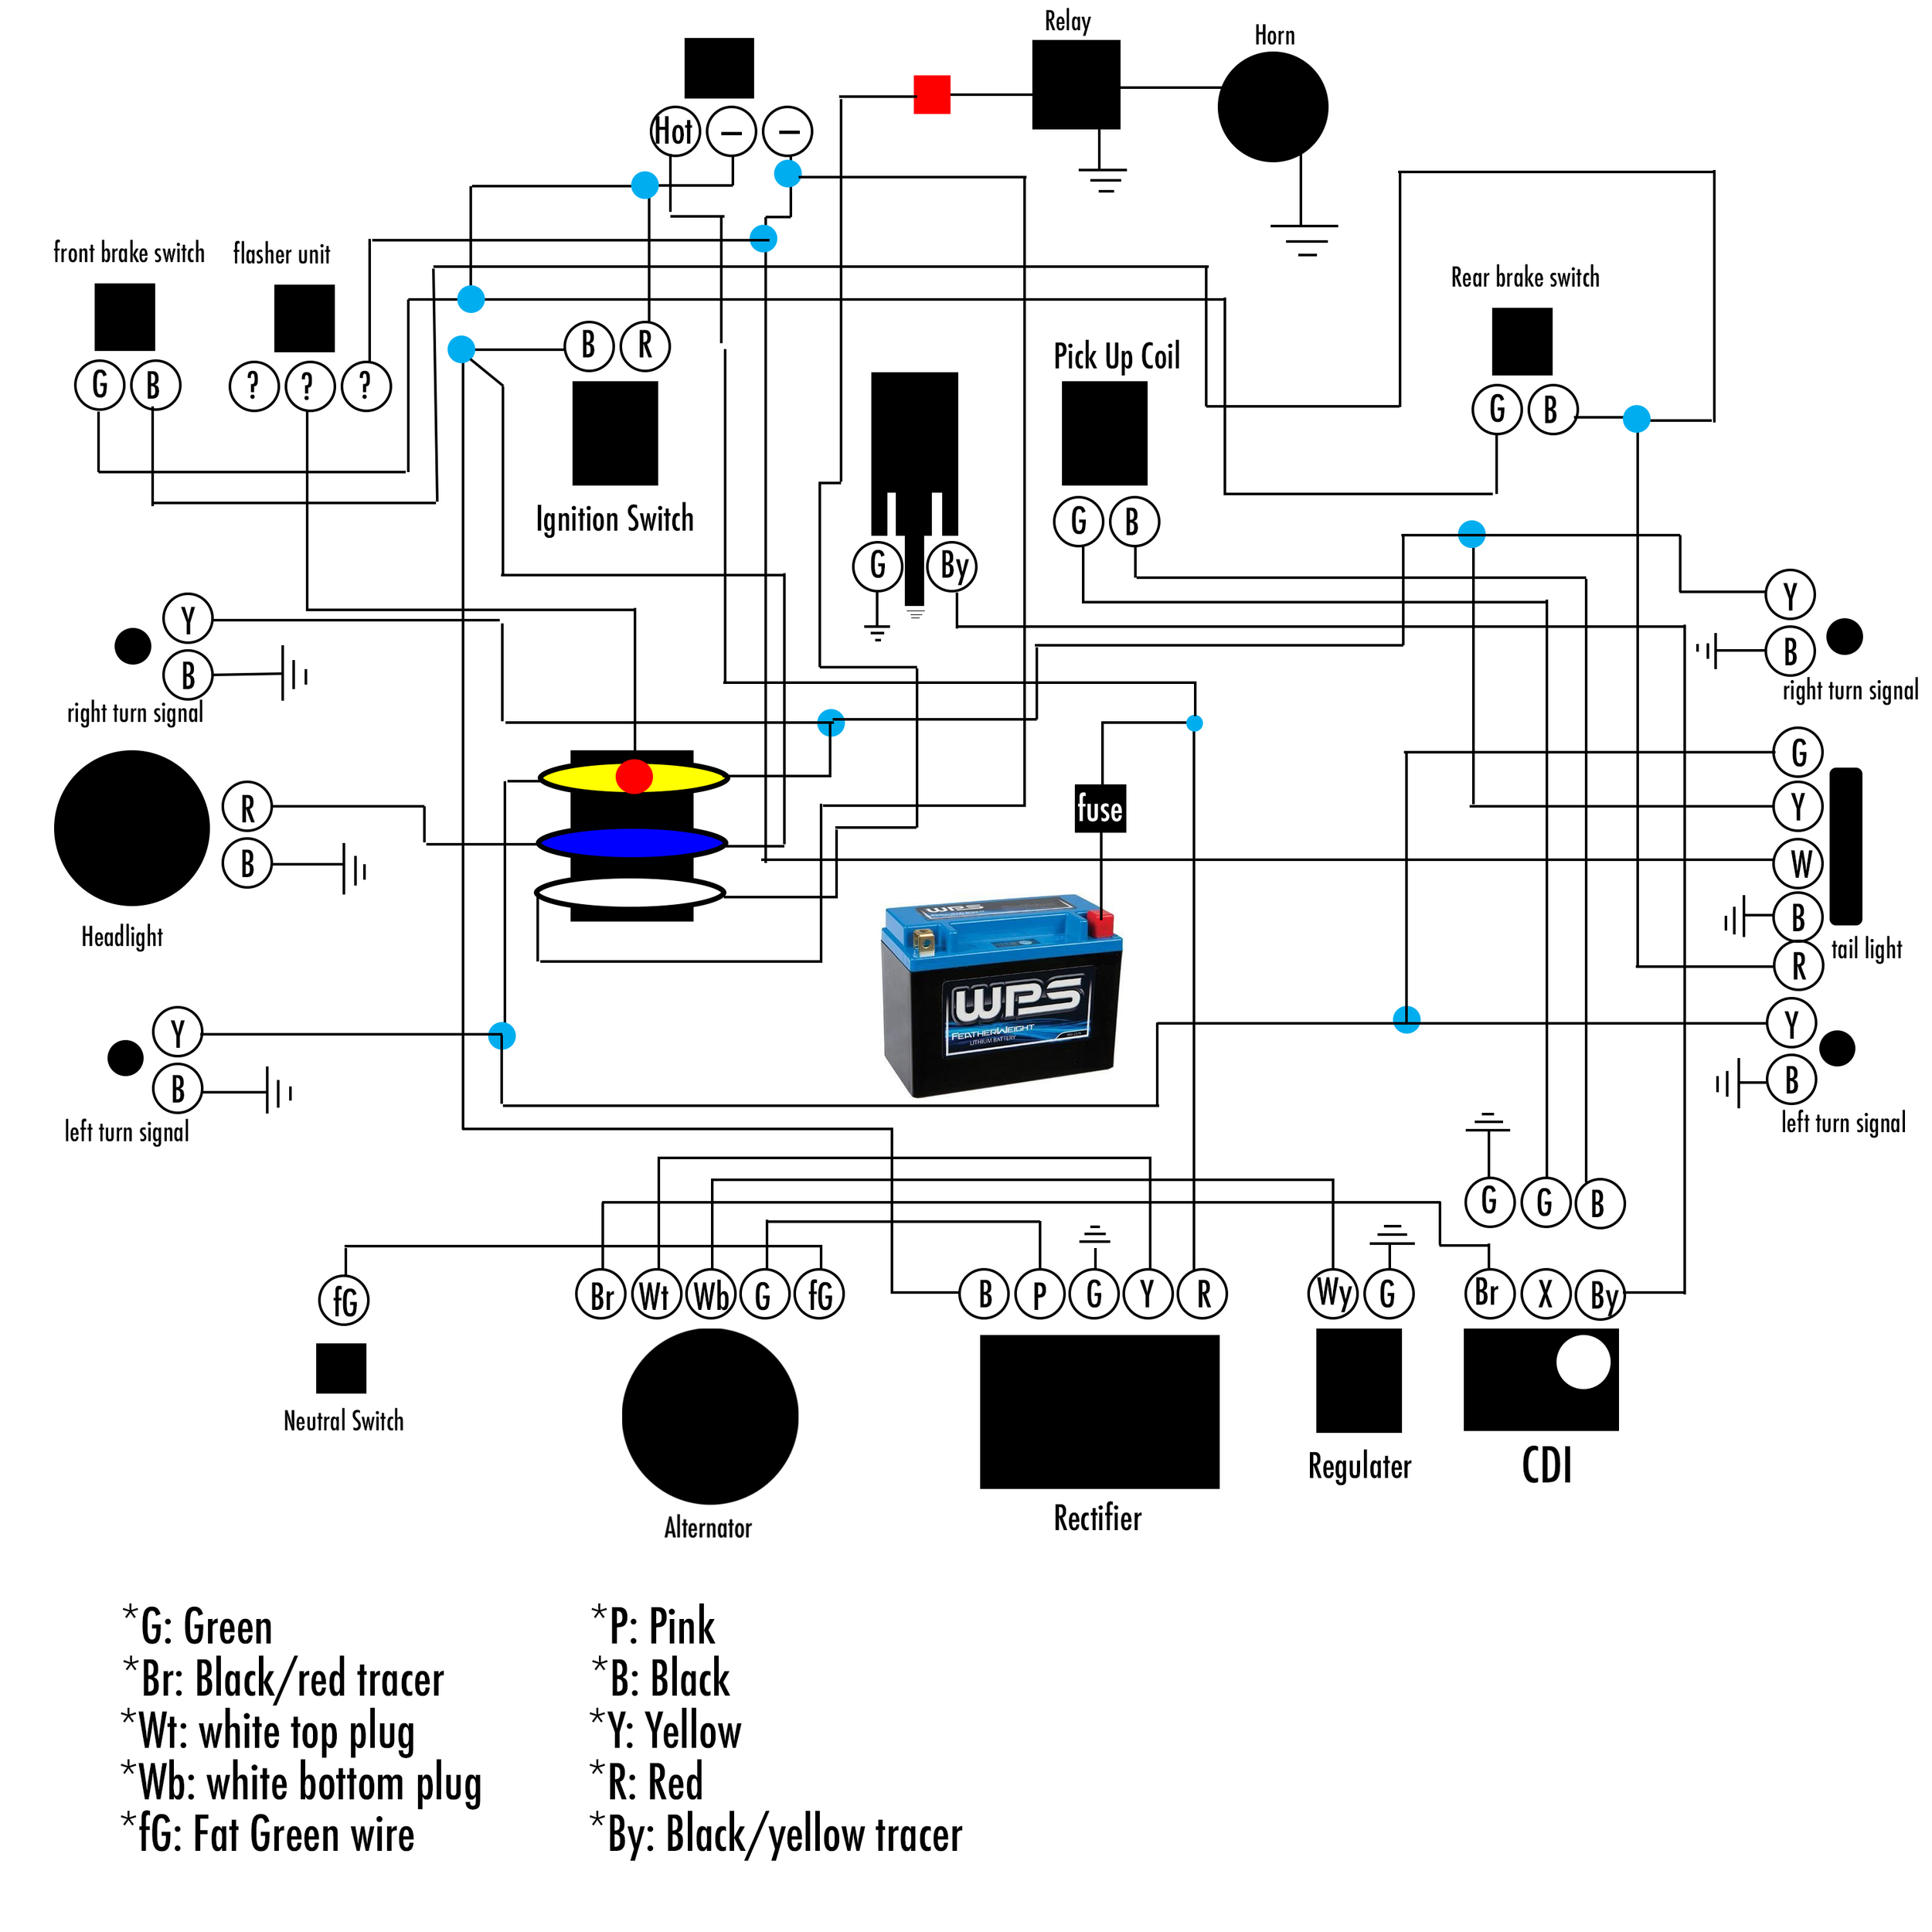 small resolution of honda xl600 r wiring diagram